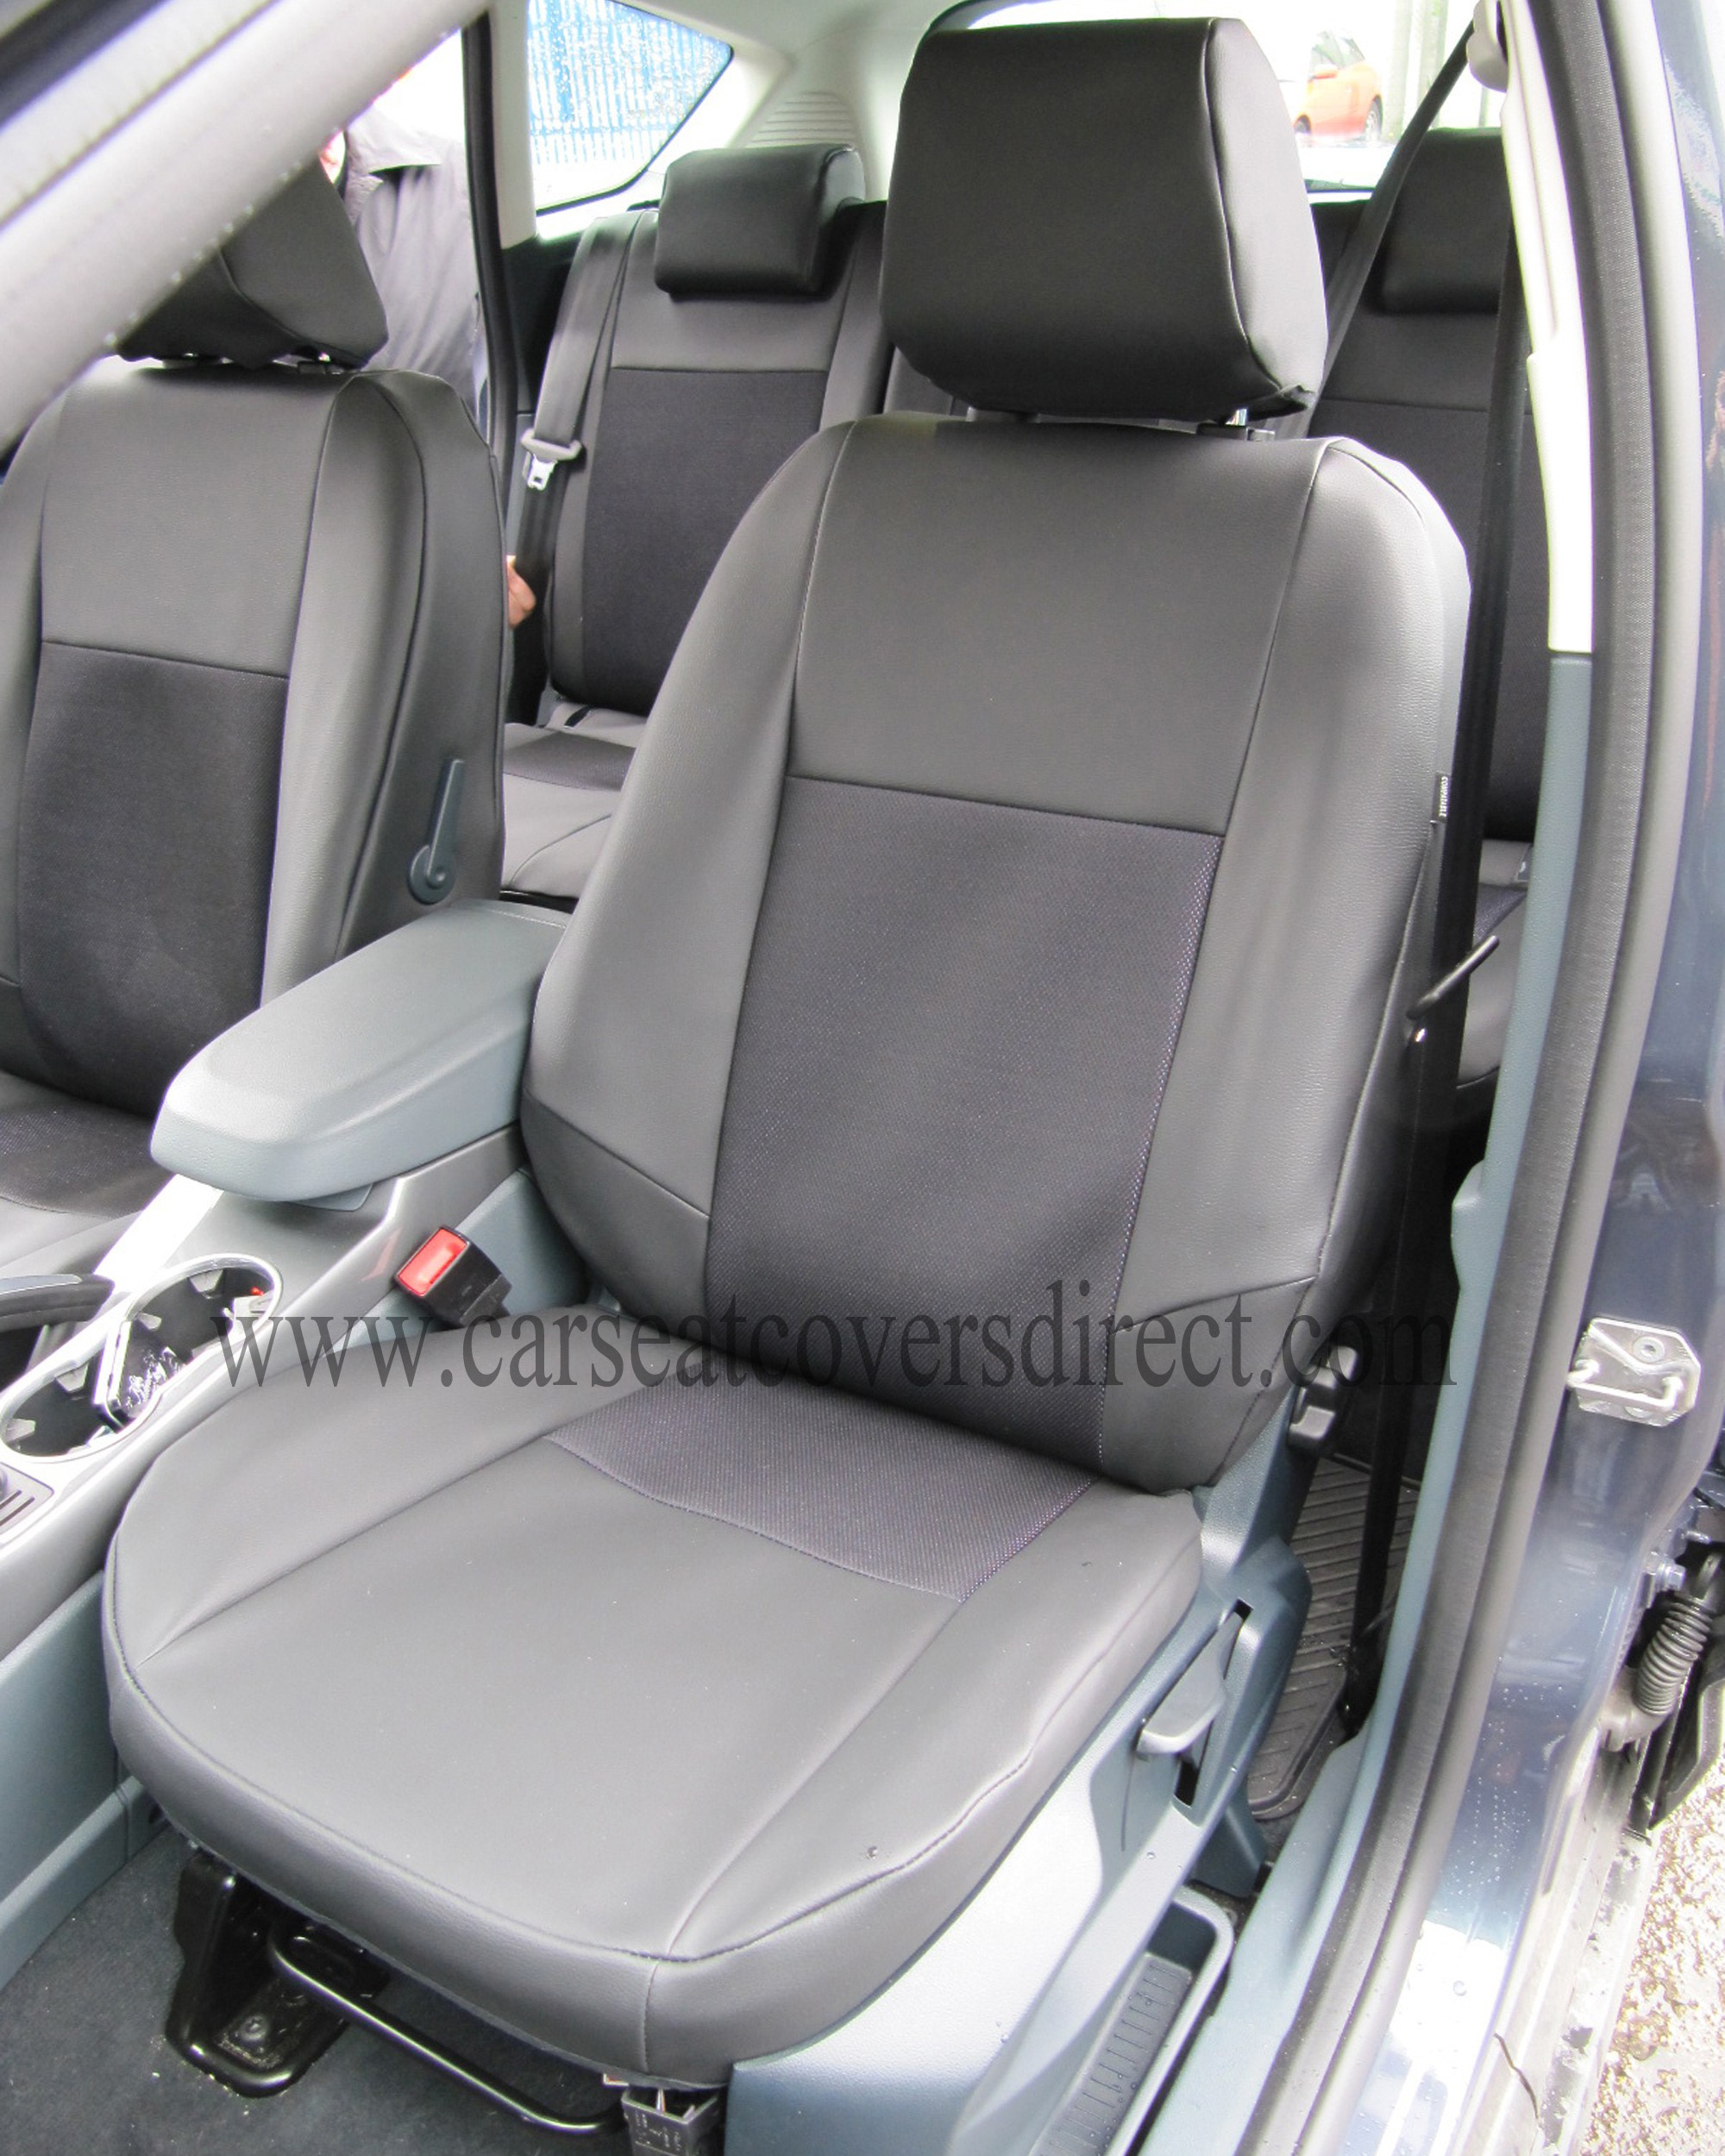 FORD C-MAX Car seat covers